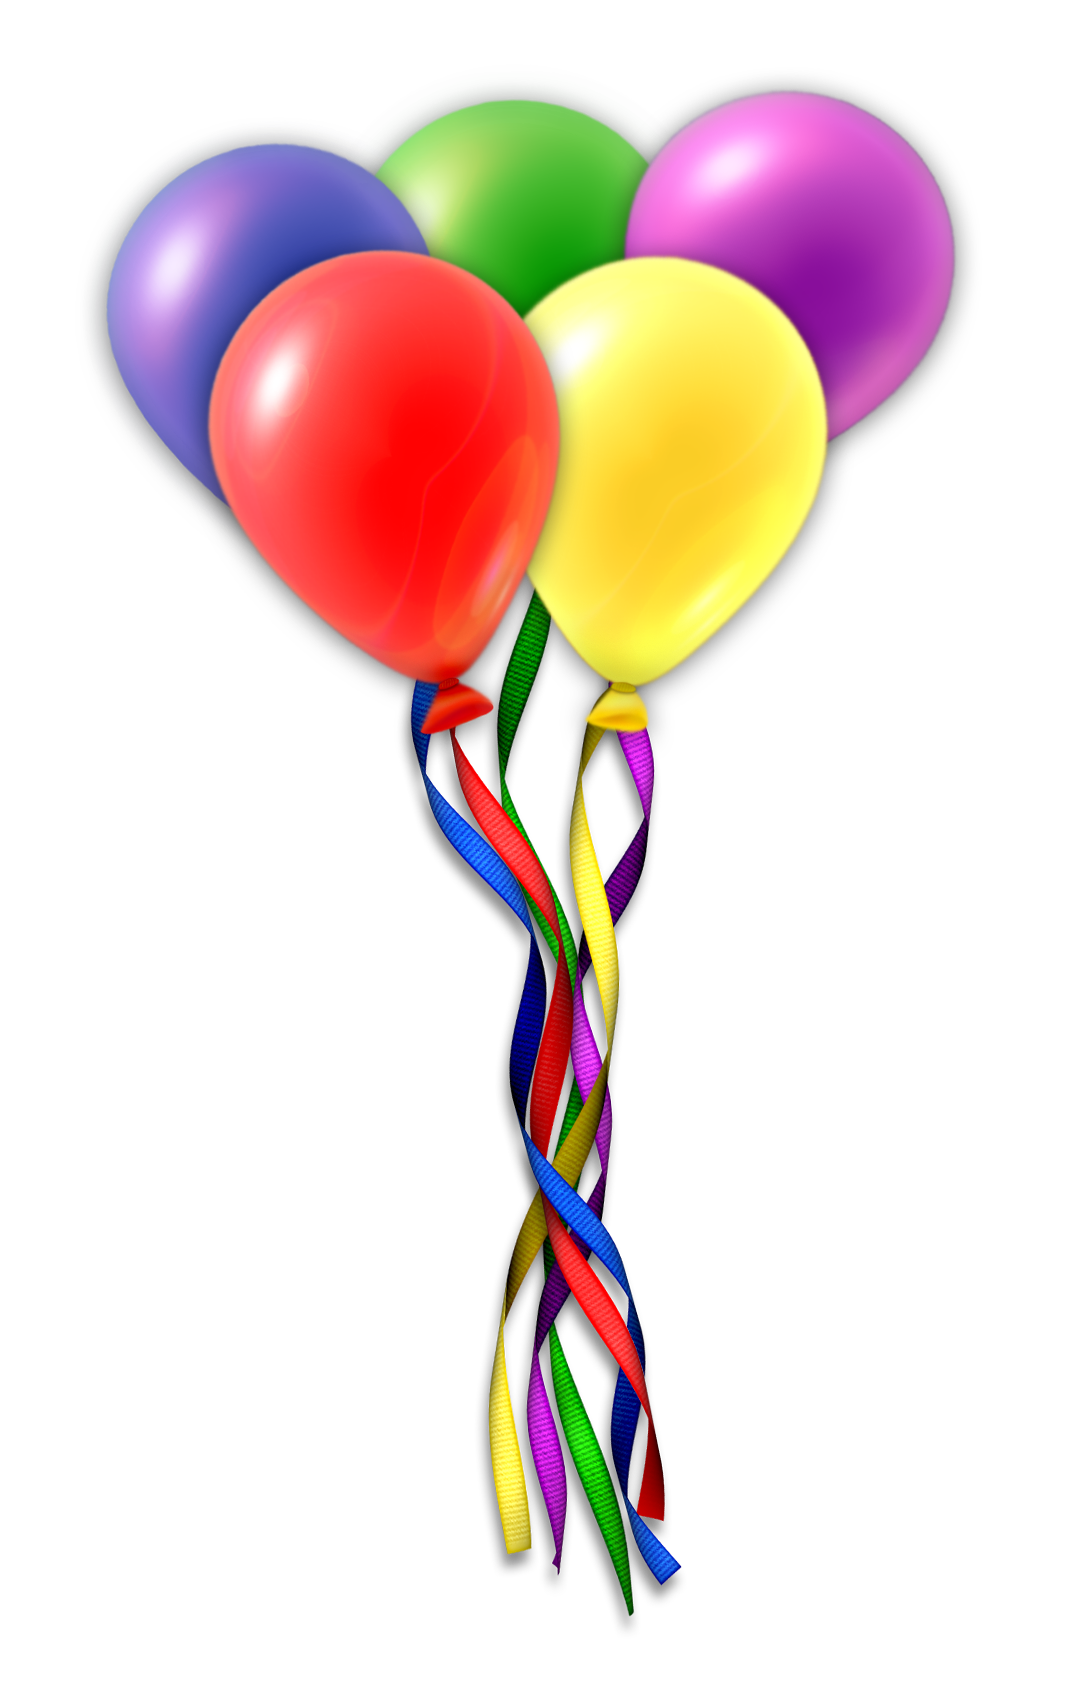 Balloons PNG Images Transparent Free Download.